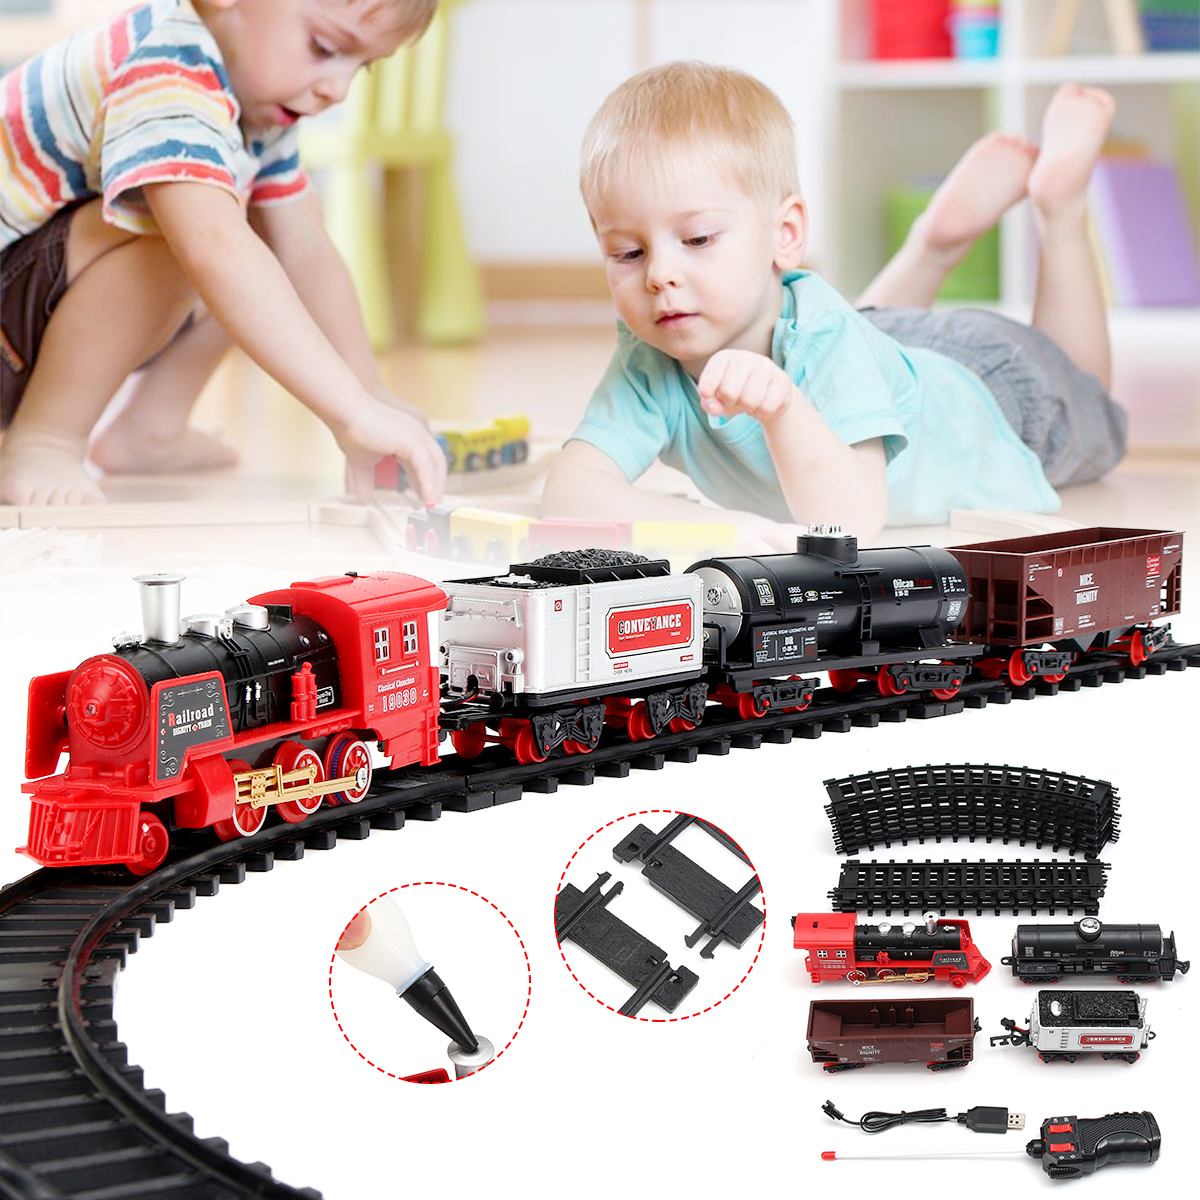 Rechargable Classi c Train Set For Kids With Real Smoke, Music, and Lights Battery Operated Railway Car Set